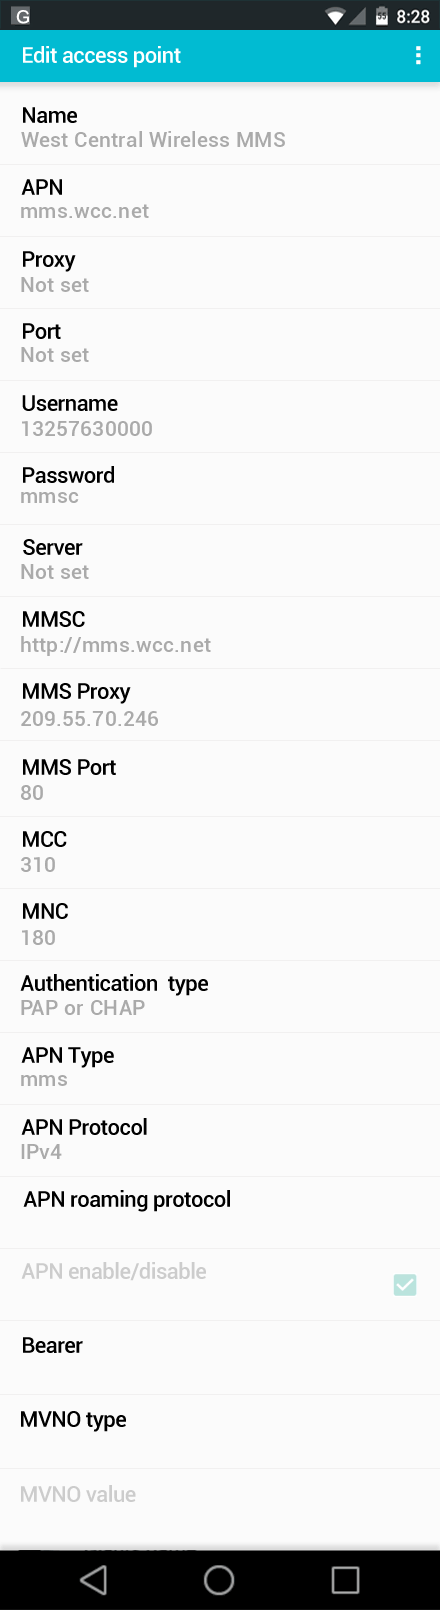 West Central Wireless MMS APN settings for Android screenshot